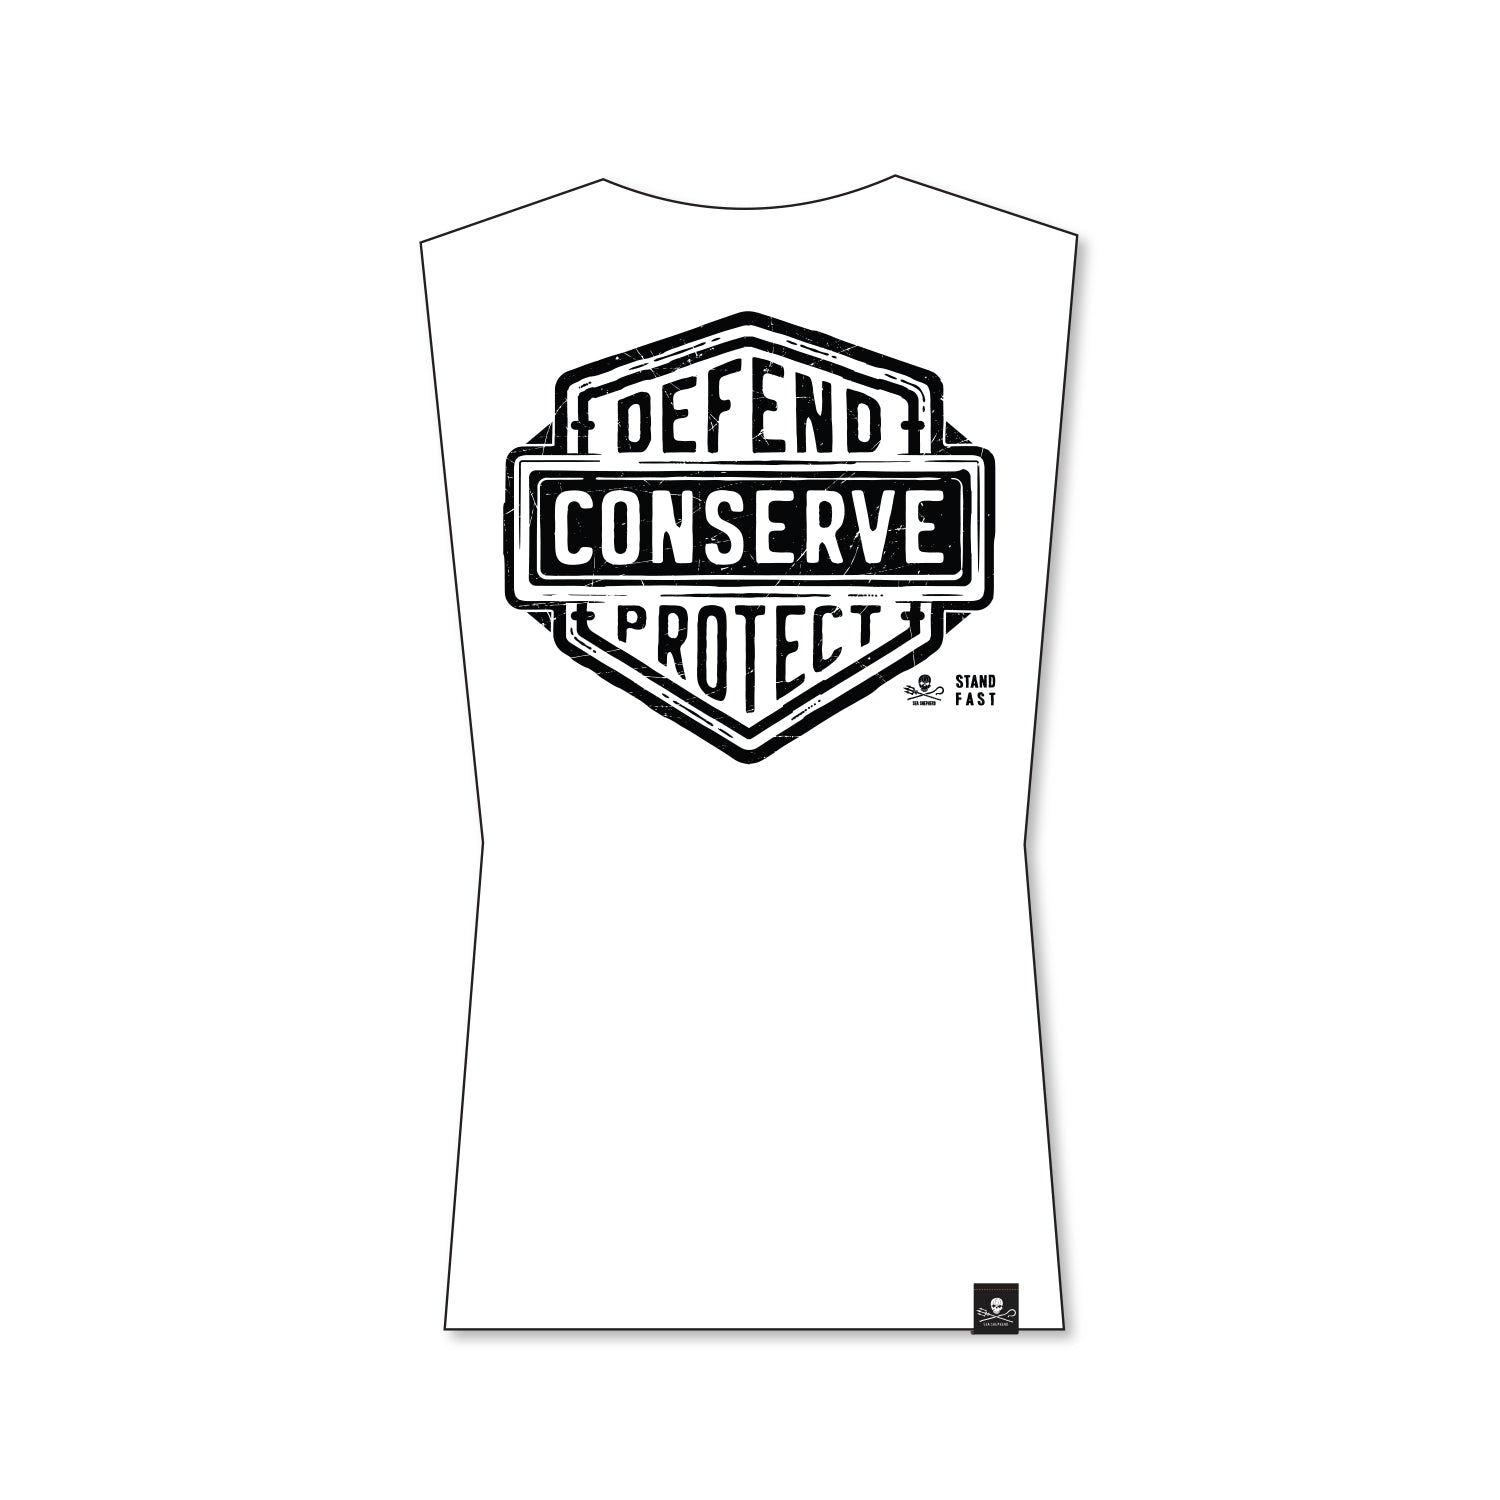 Sea Shepherd Stand Fast - Defend Conserve Protect Forever 100% Organic Cotton Muscle - White Tee